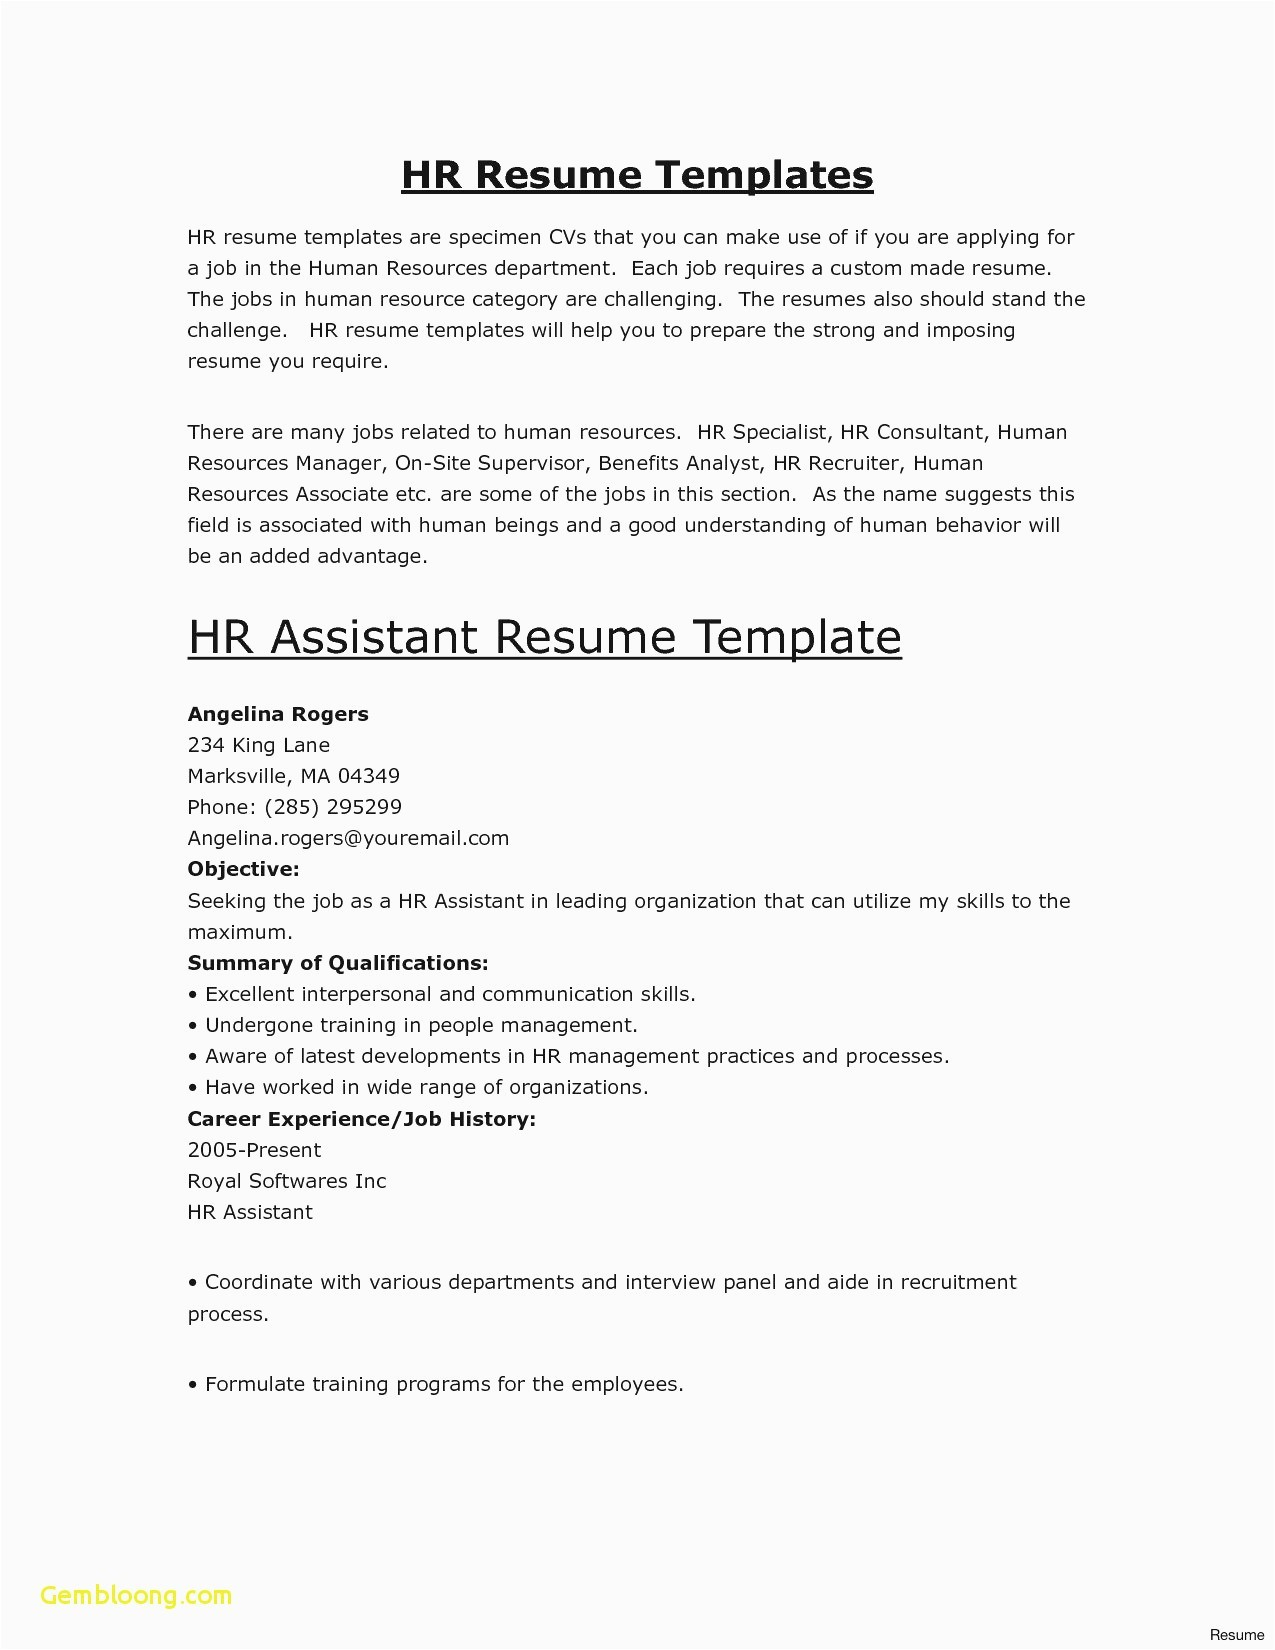 Sample Resumes for People Over 50 Sample Resumes for People Over 50 Lovely Sample Resume for